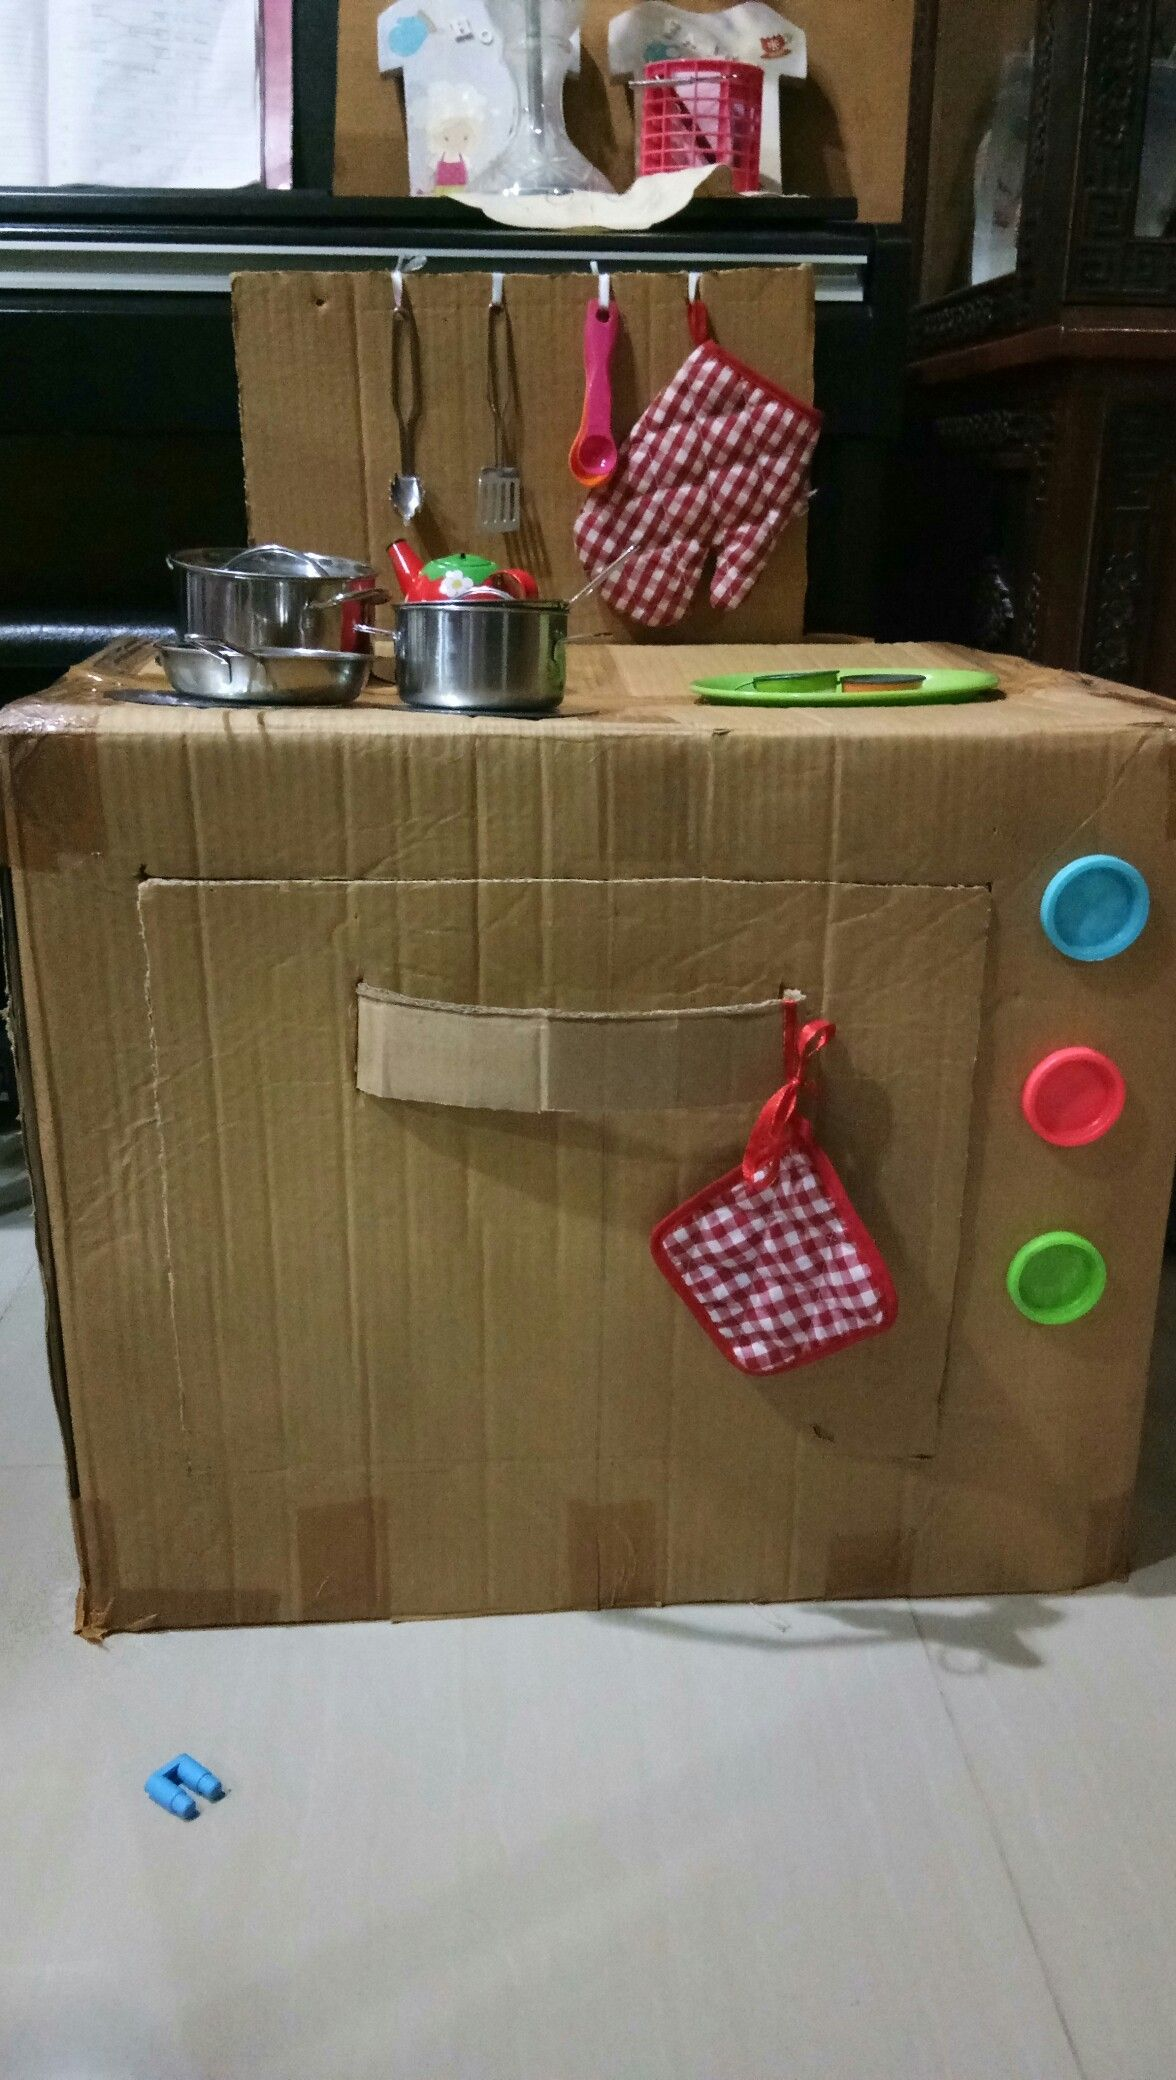 Kitchen play set from cardboard